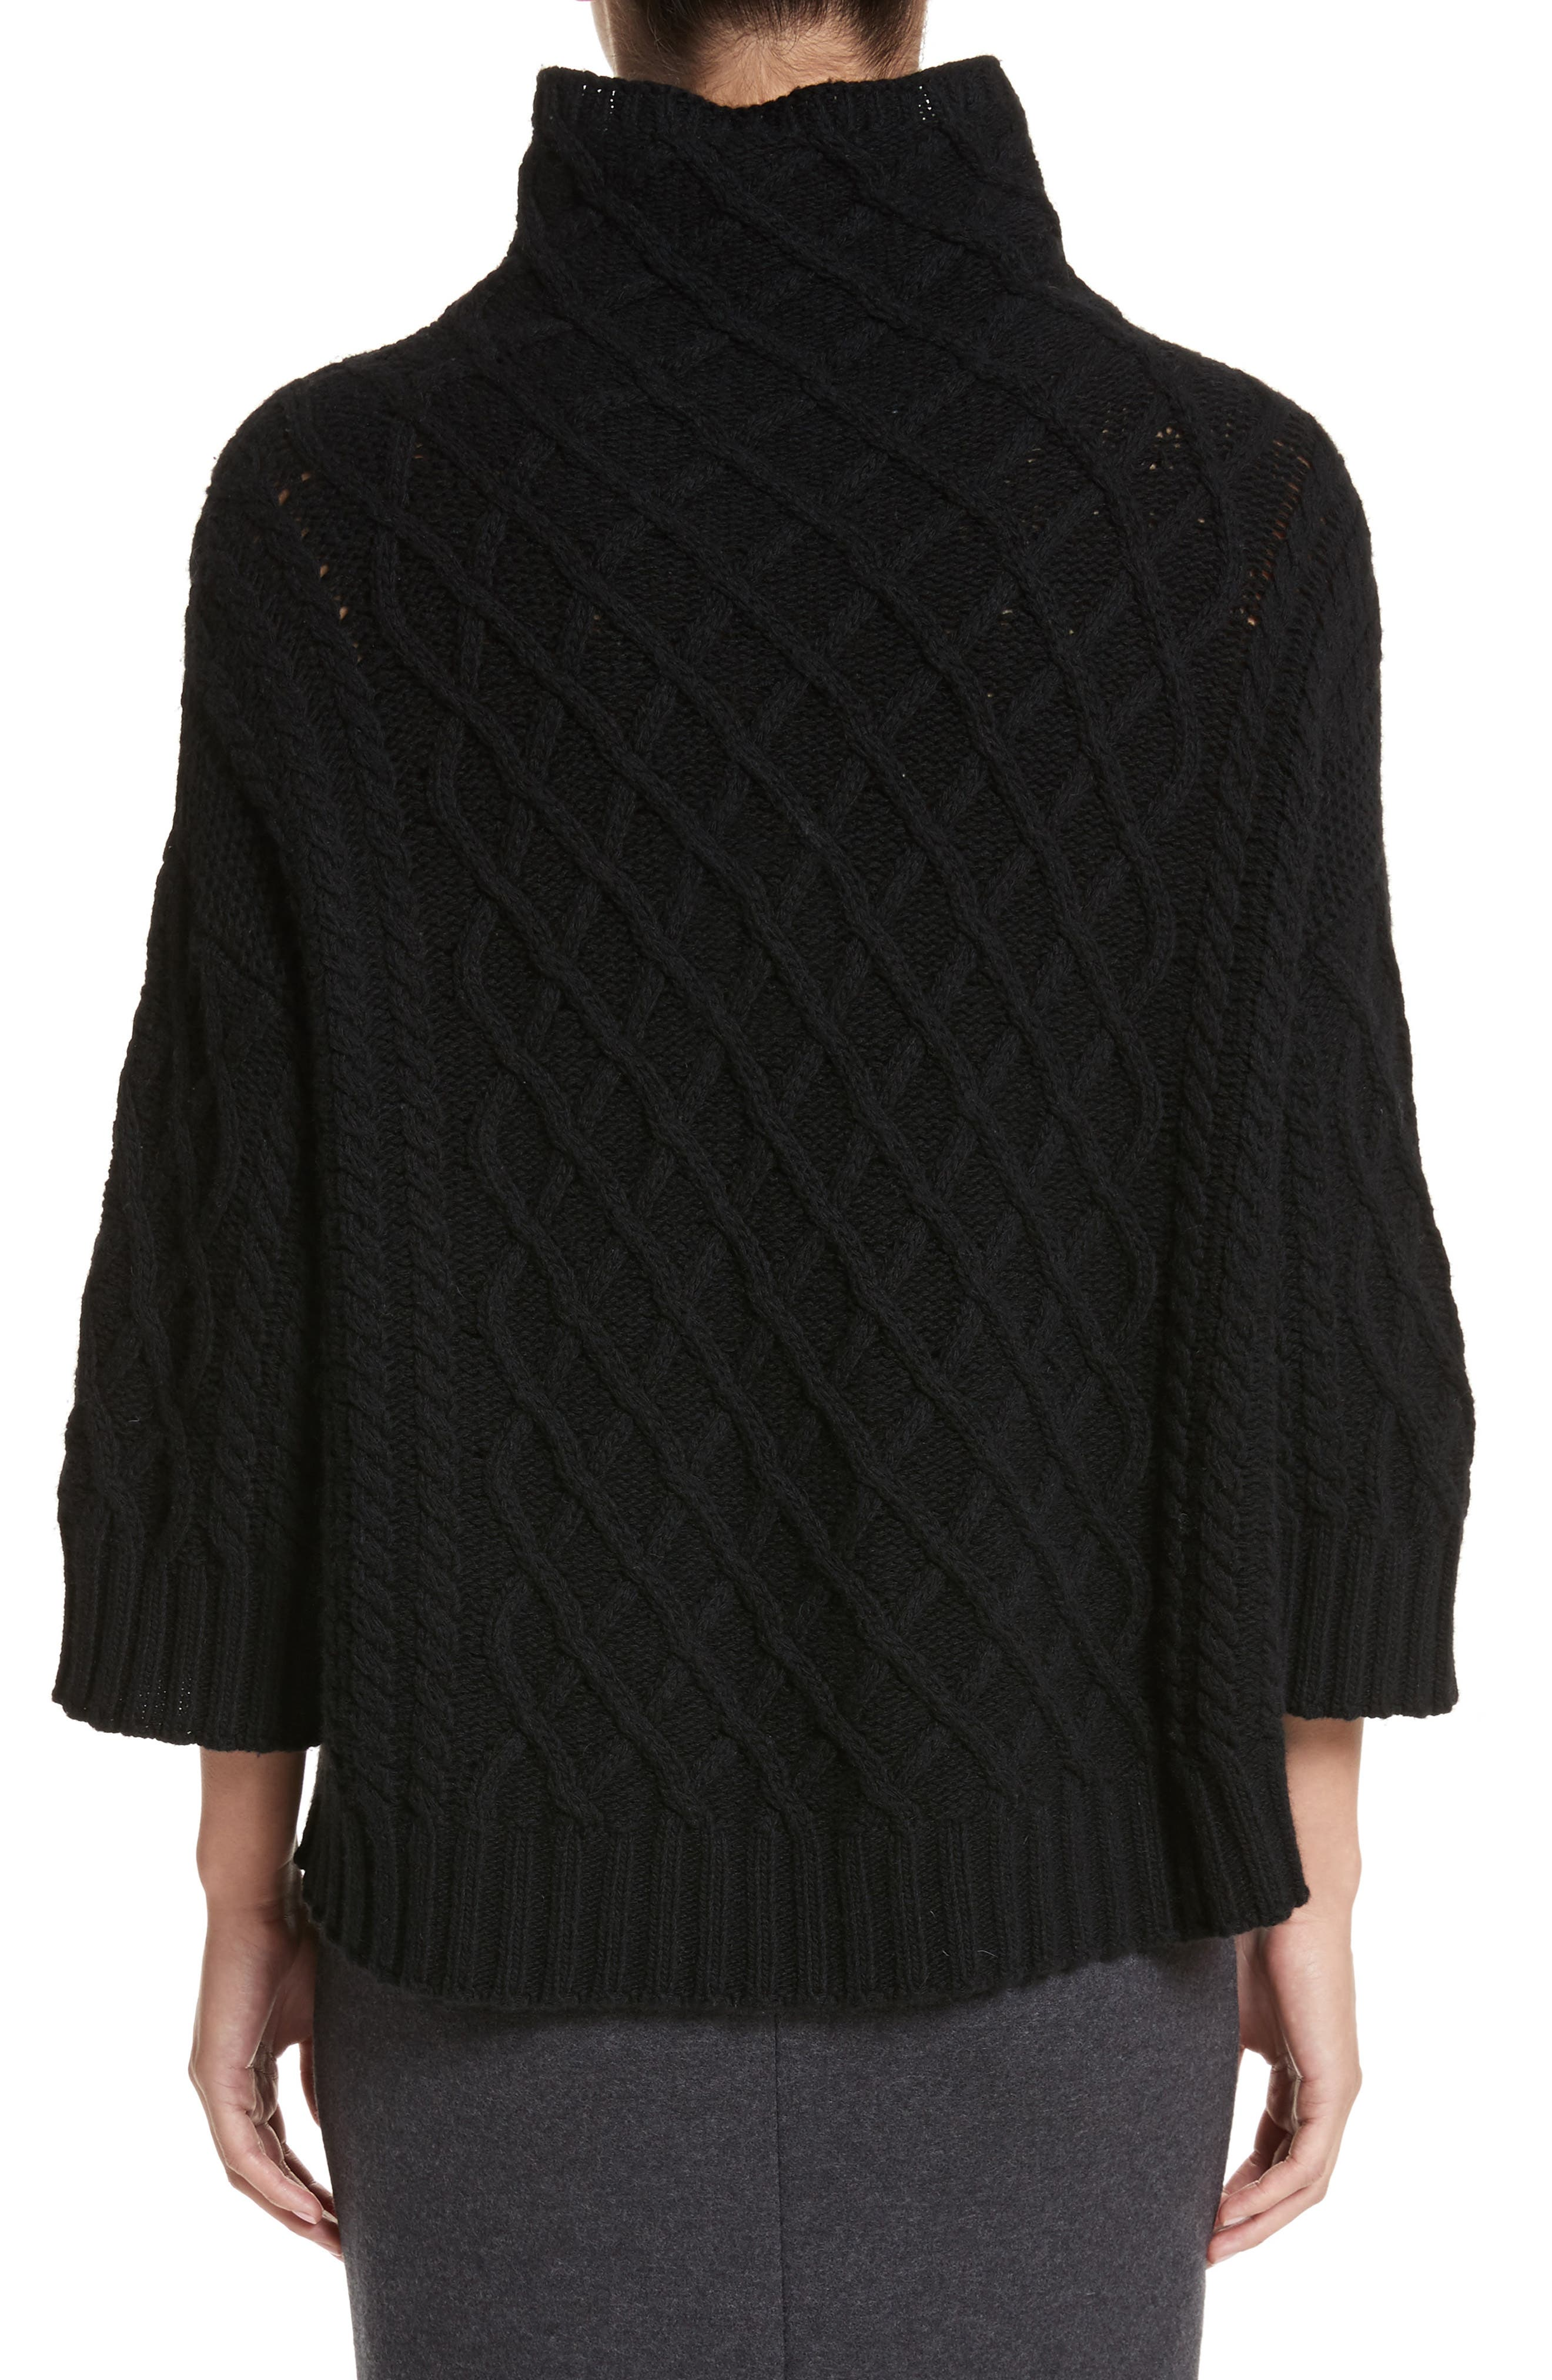 Cantone Wool & Cashmere Funnel Neck Sweater,                             Alternate thumbnail 2, color,